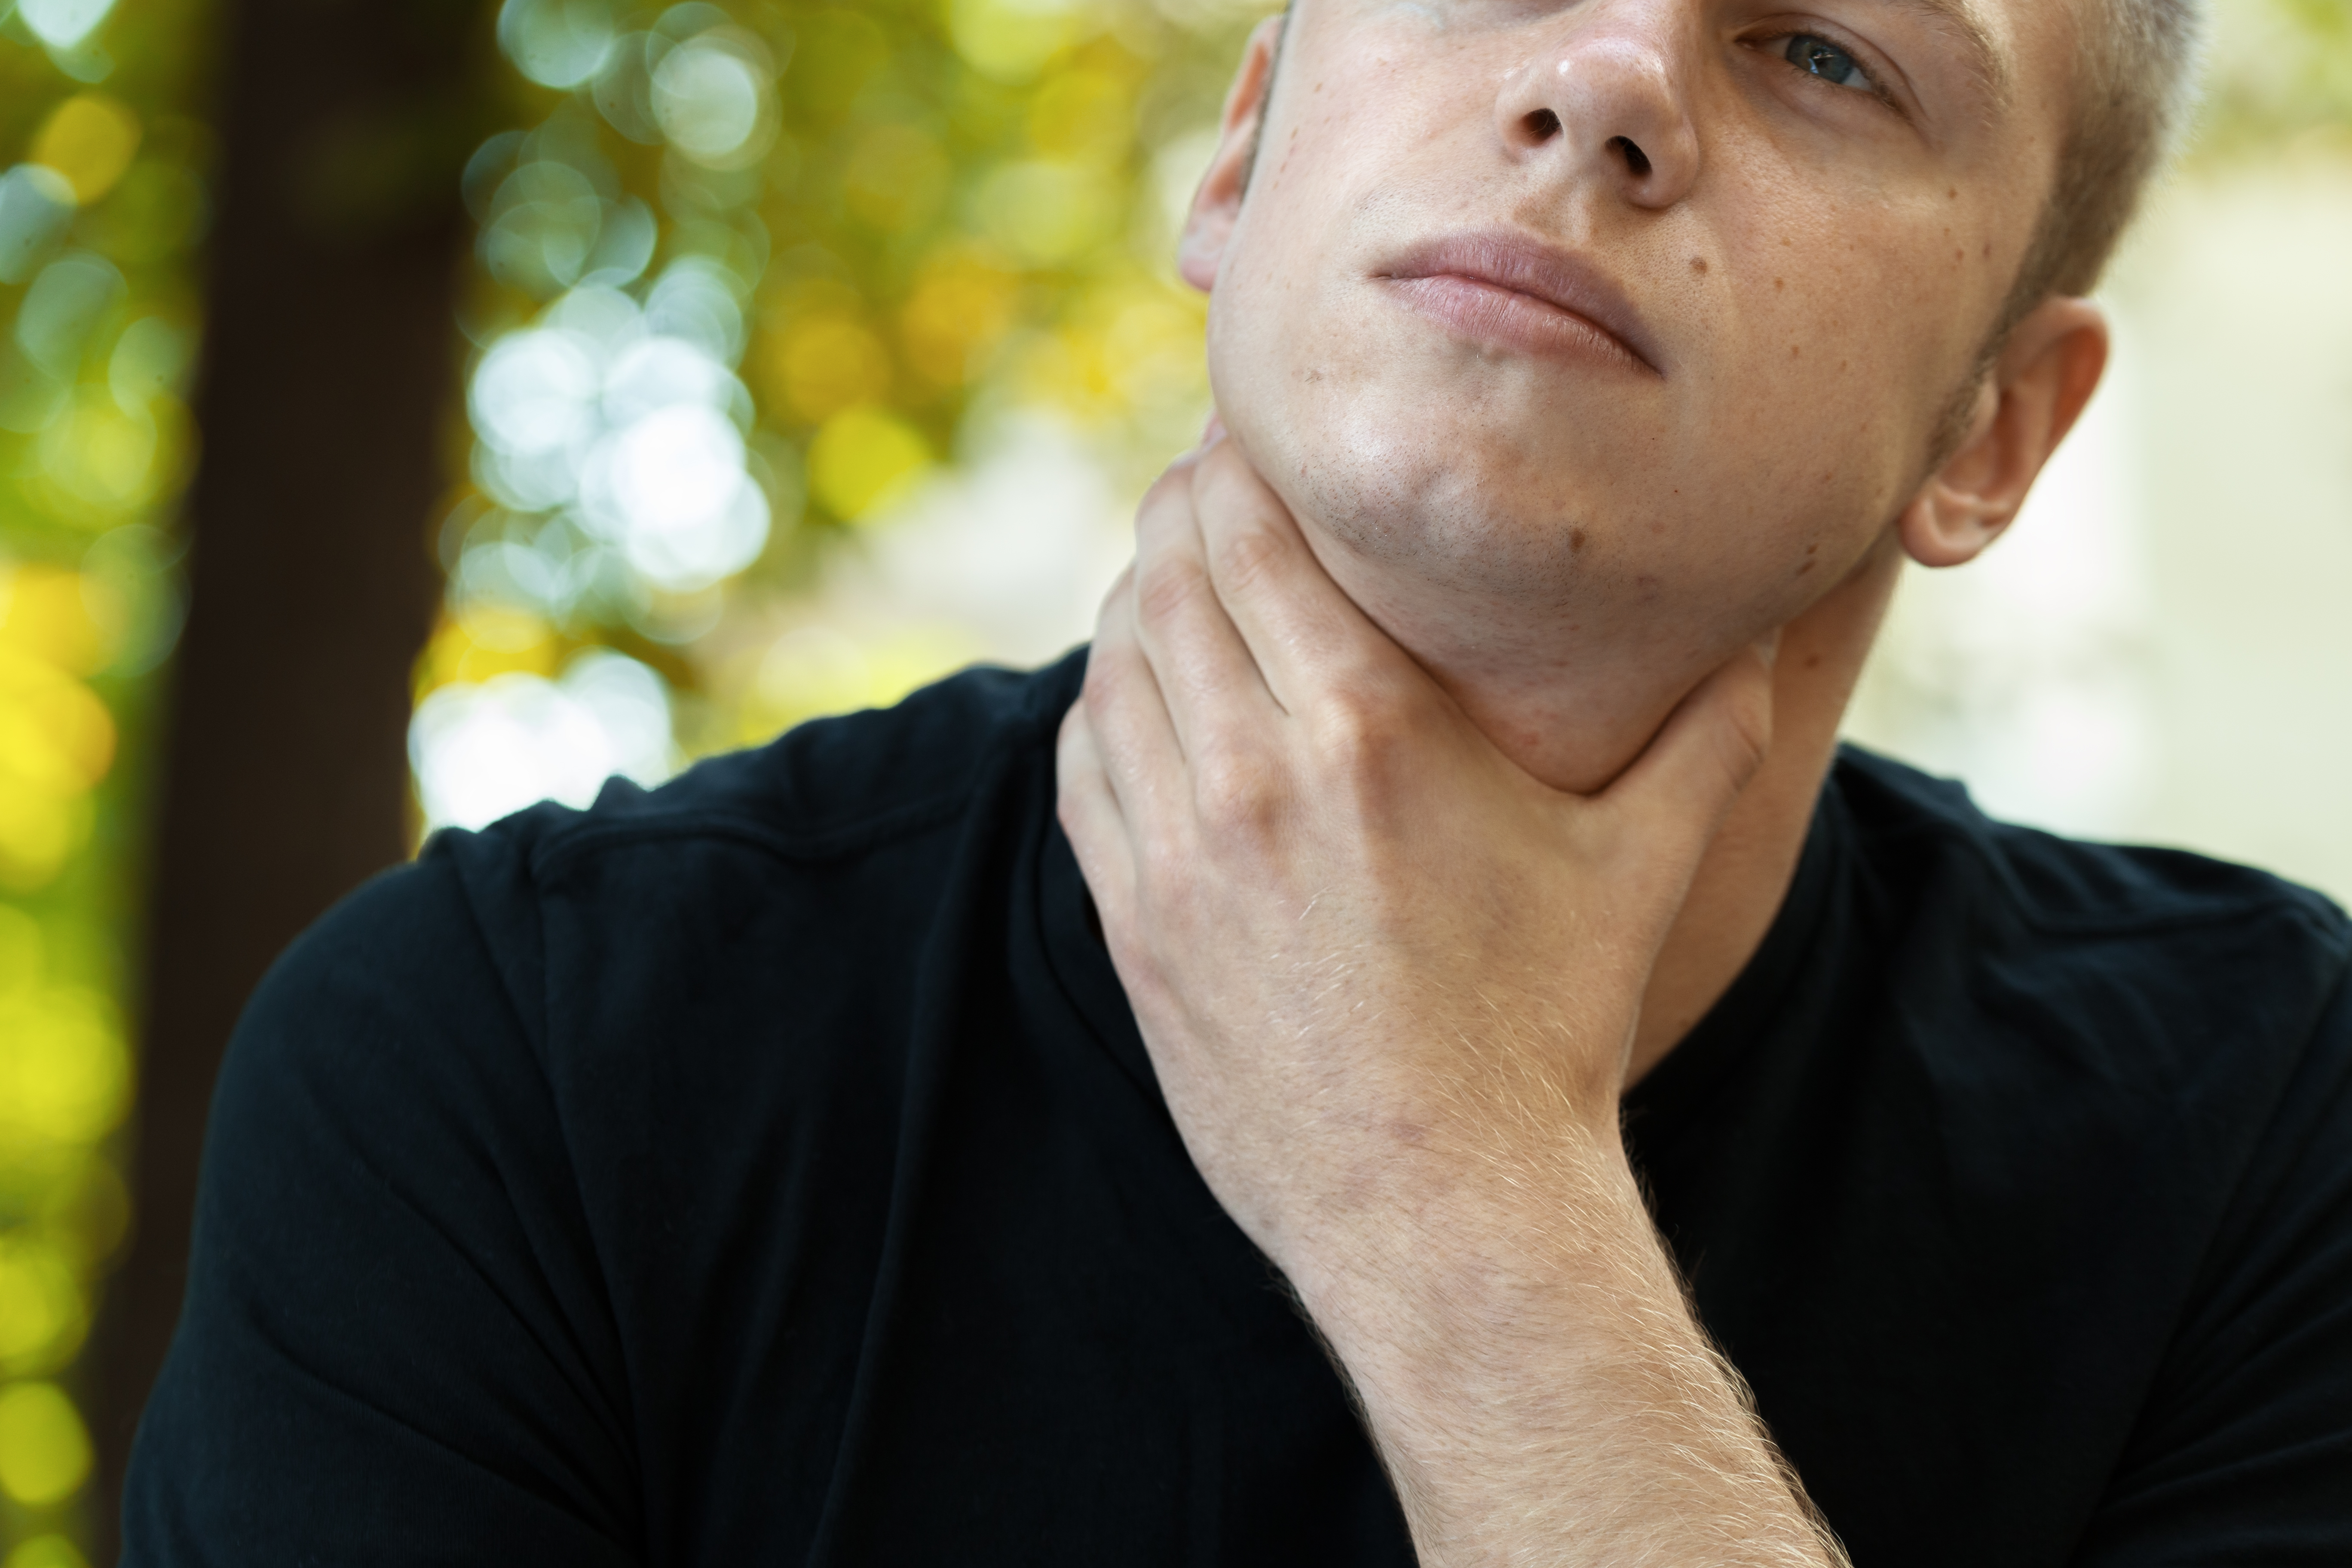 WHY Does Acid Reflux (LPR) Cause Throat Lump Feeling?